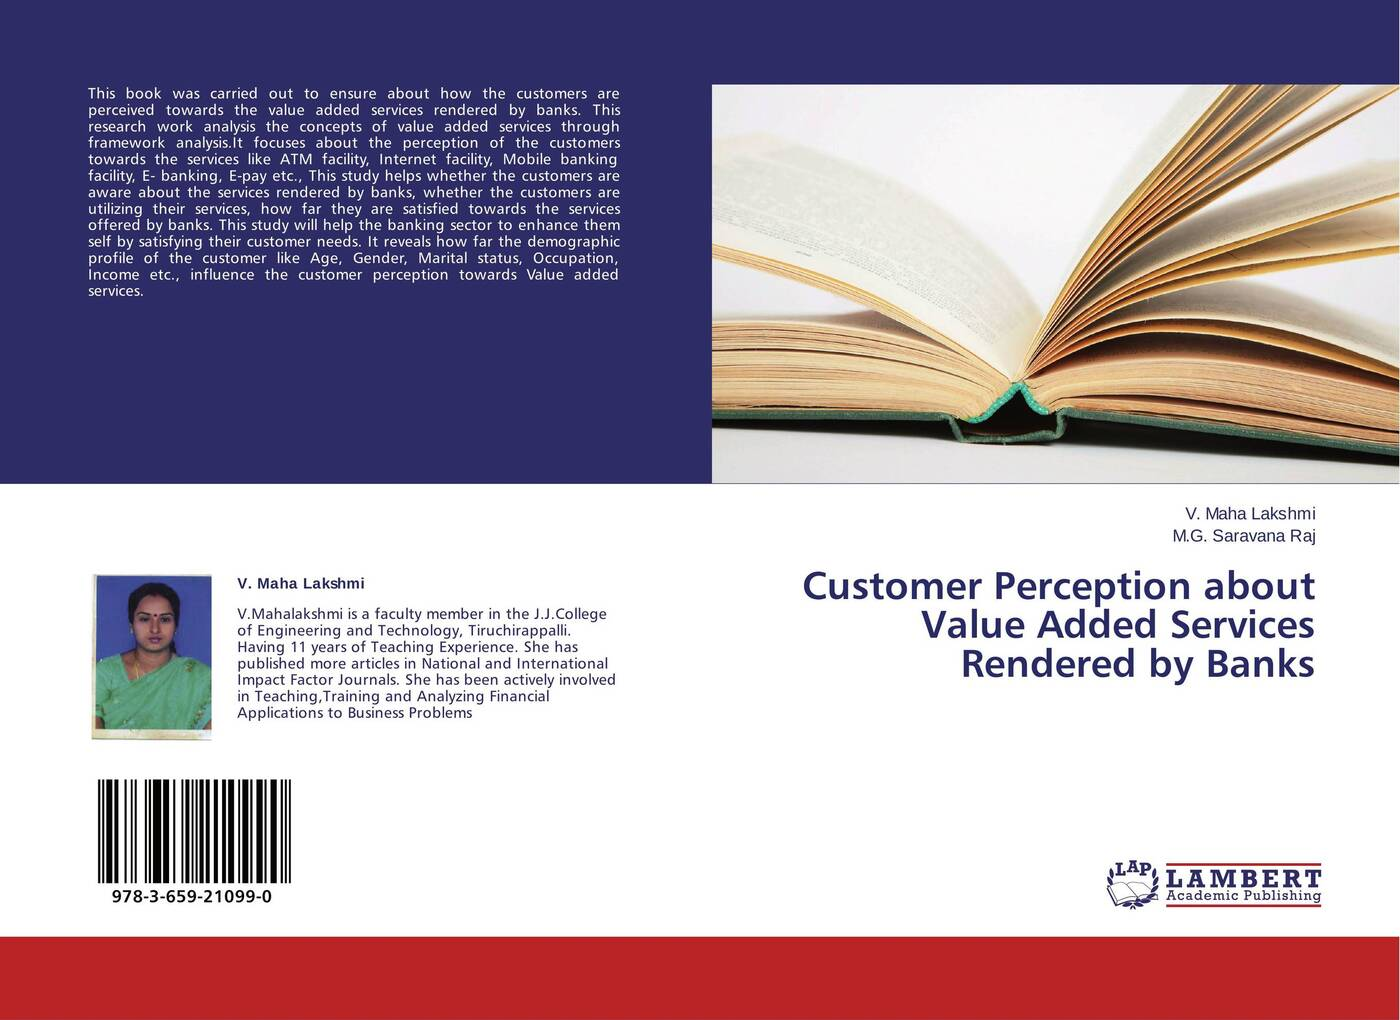 лучшая цена V. Maha Lakshmi and M.G. Saravana Raj Customer Perception about Value Added Services Rendered by Banks